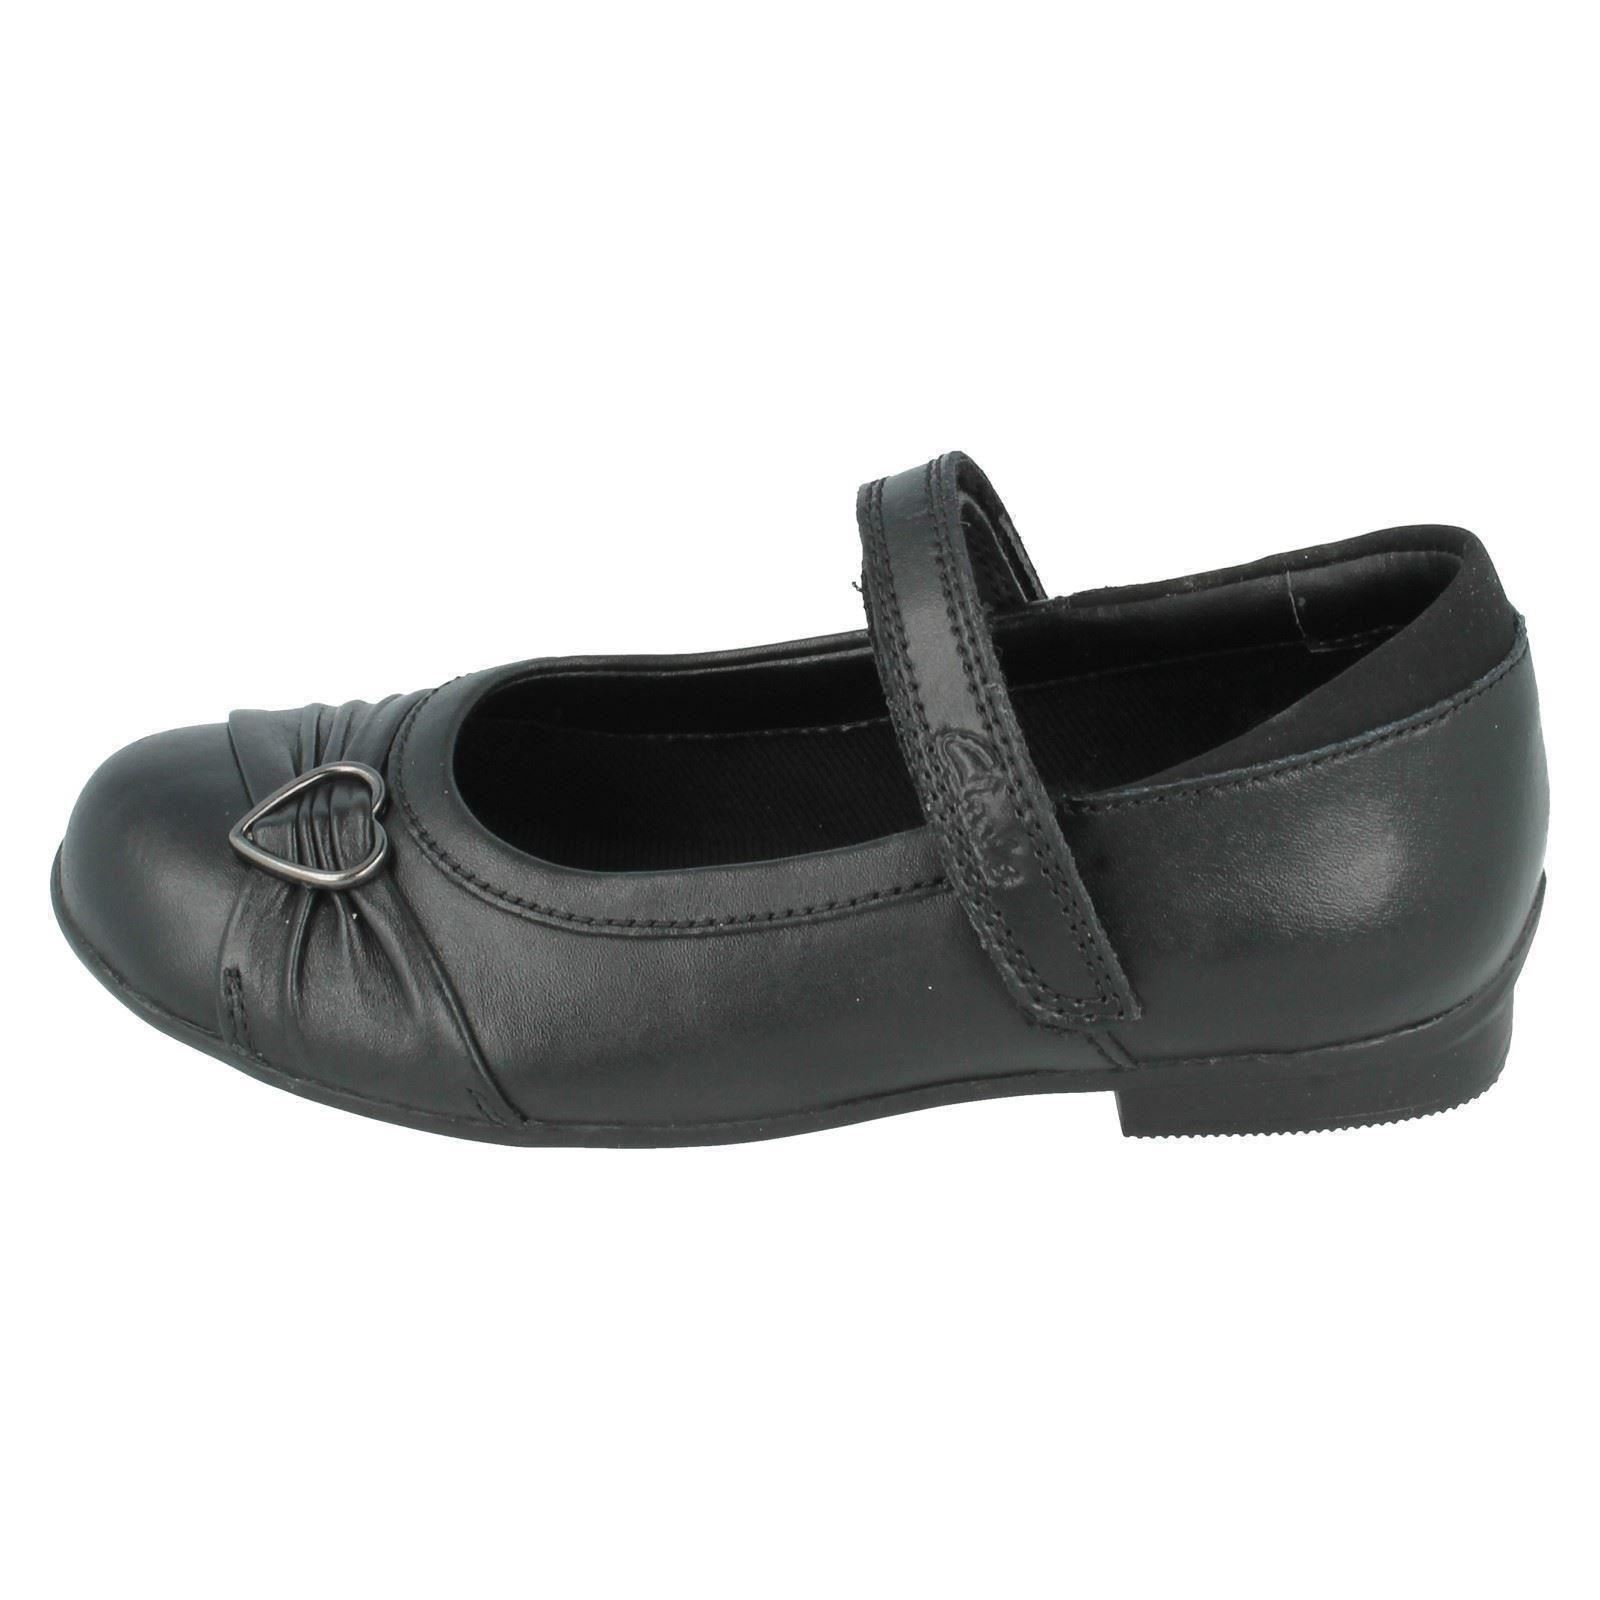 Girls Clarks Shoes Style Dolly Heart